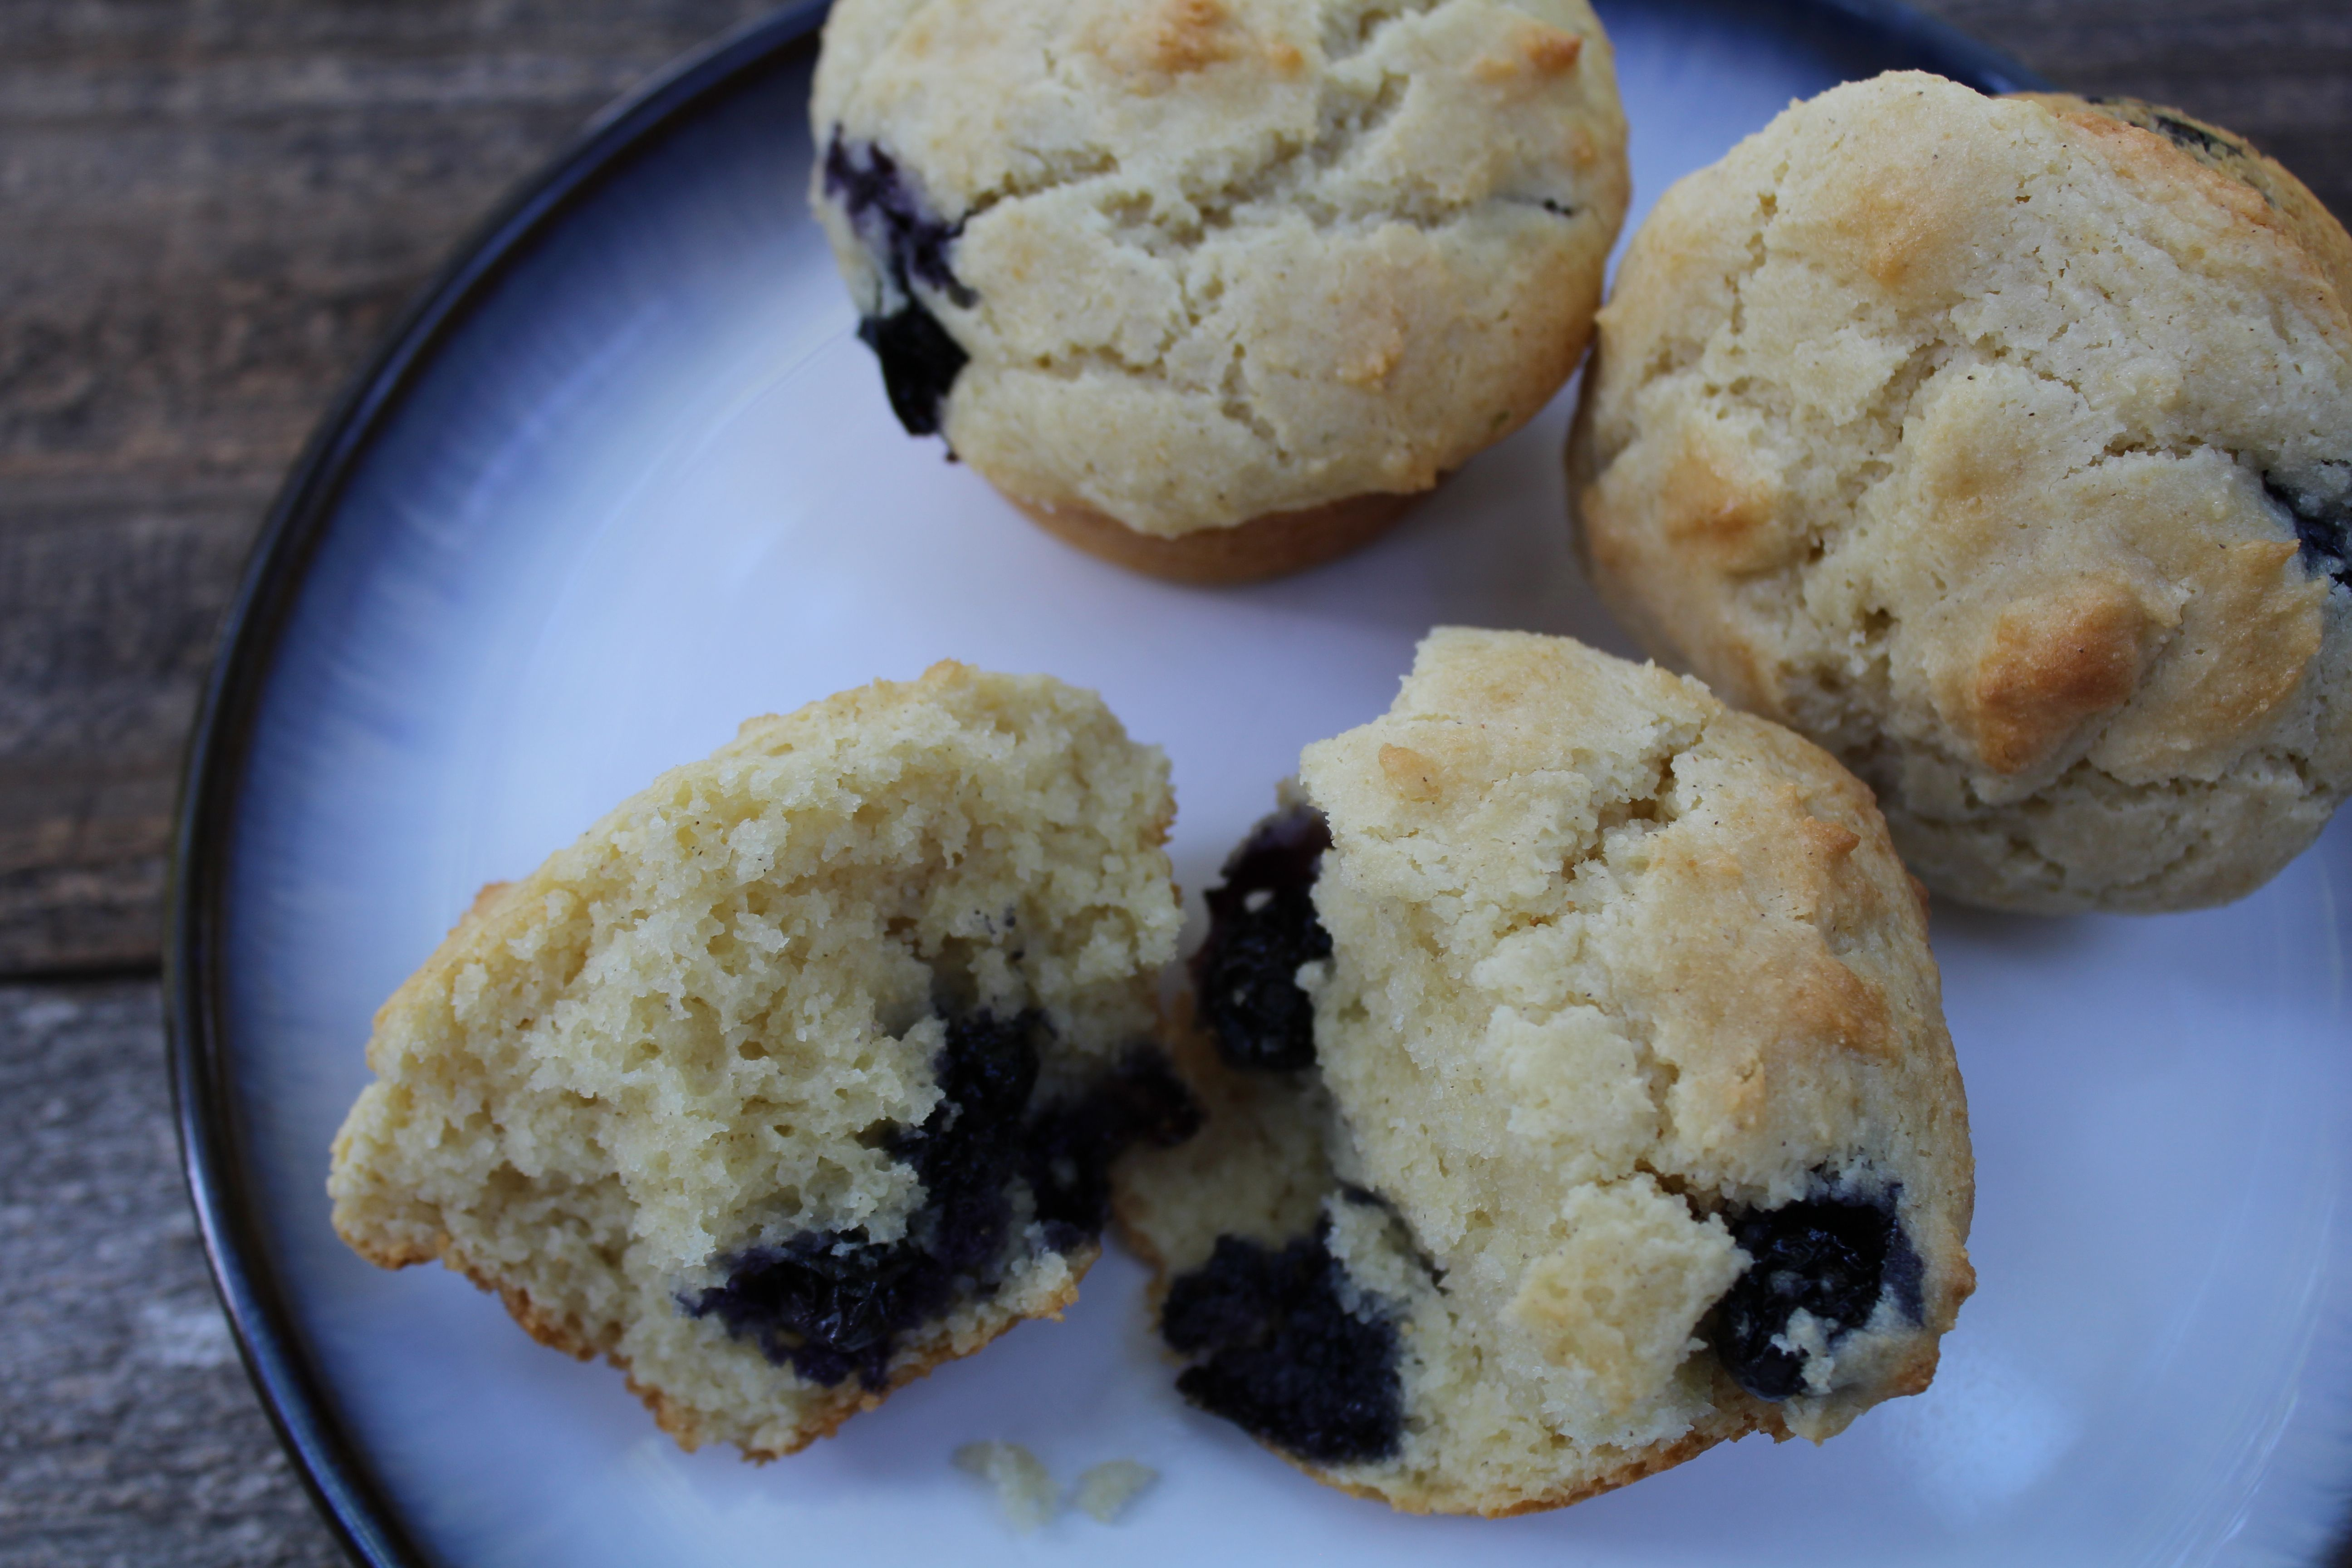 Blueberry Sour Cream Muffins, gluten free - KitchOut.com